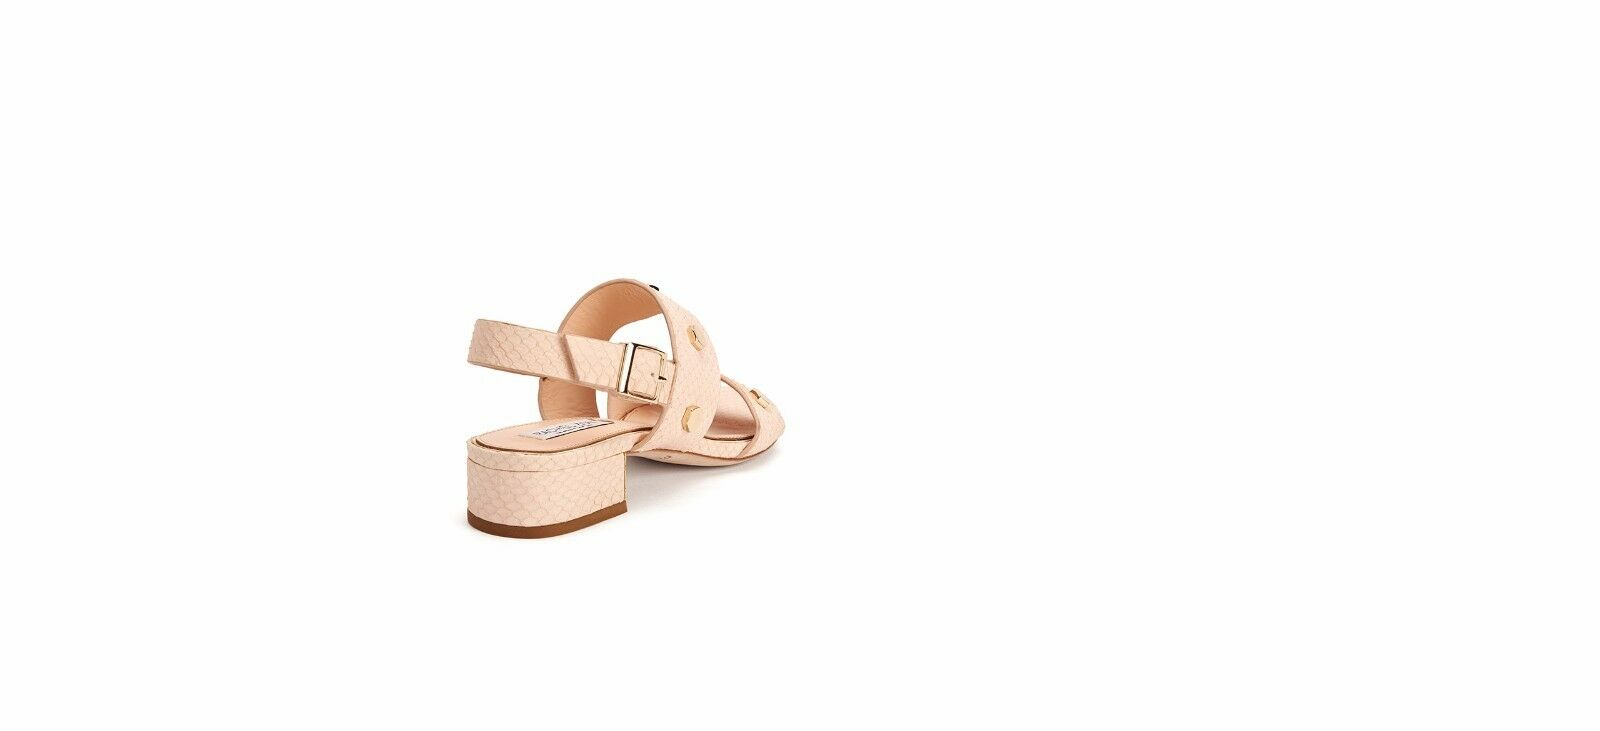 Rachel Zoe Florence Studded Snake-Embossed Leather Sandals, Nude, Size 8